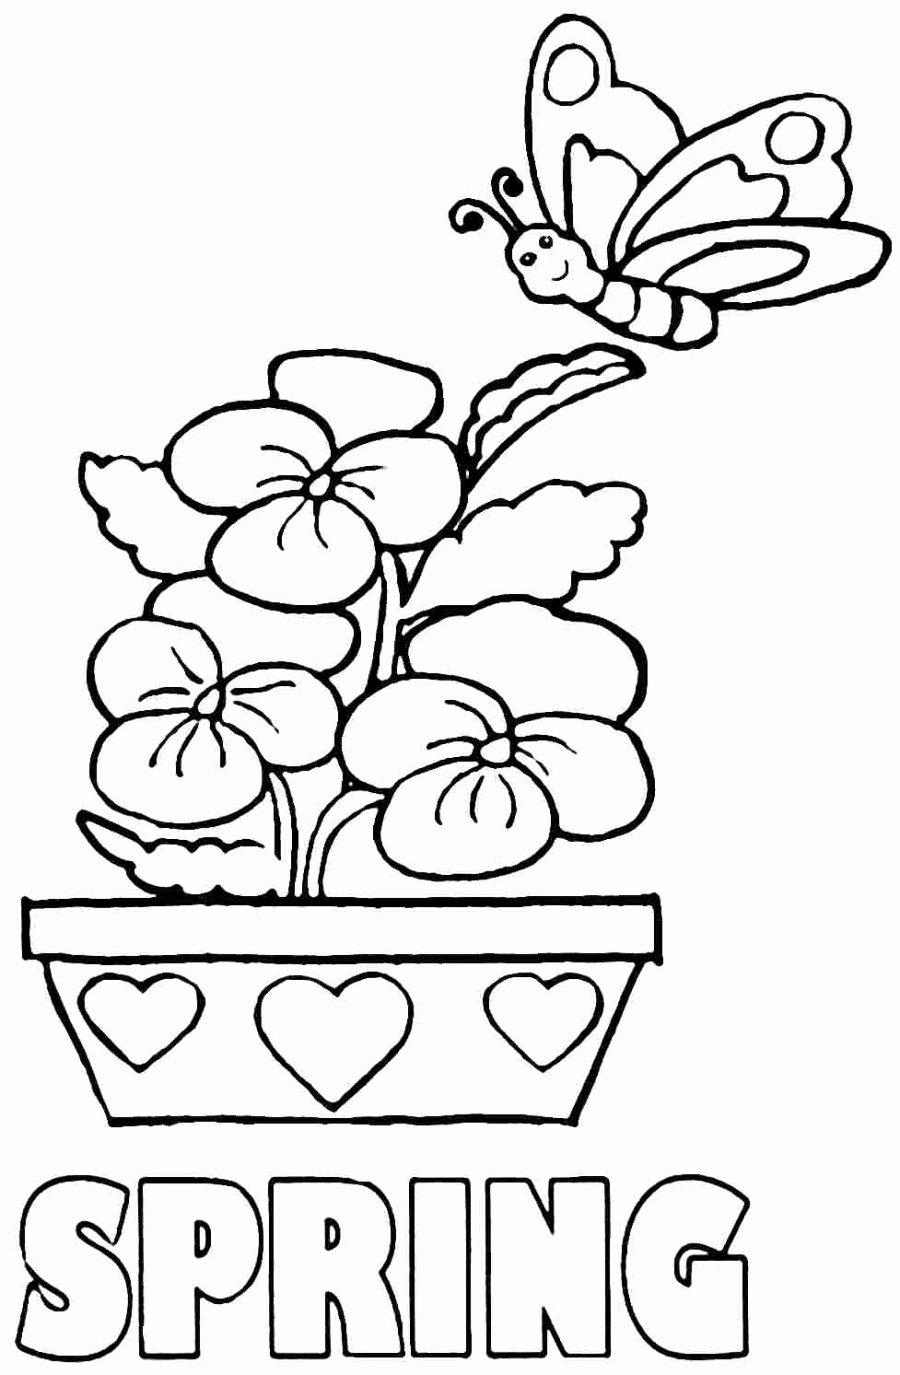 Spring Season Worksheets for Preschoolers Best Of Fabulous Spring Coloring Sheets for toddlers Picture